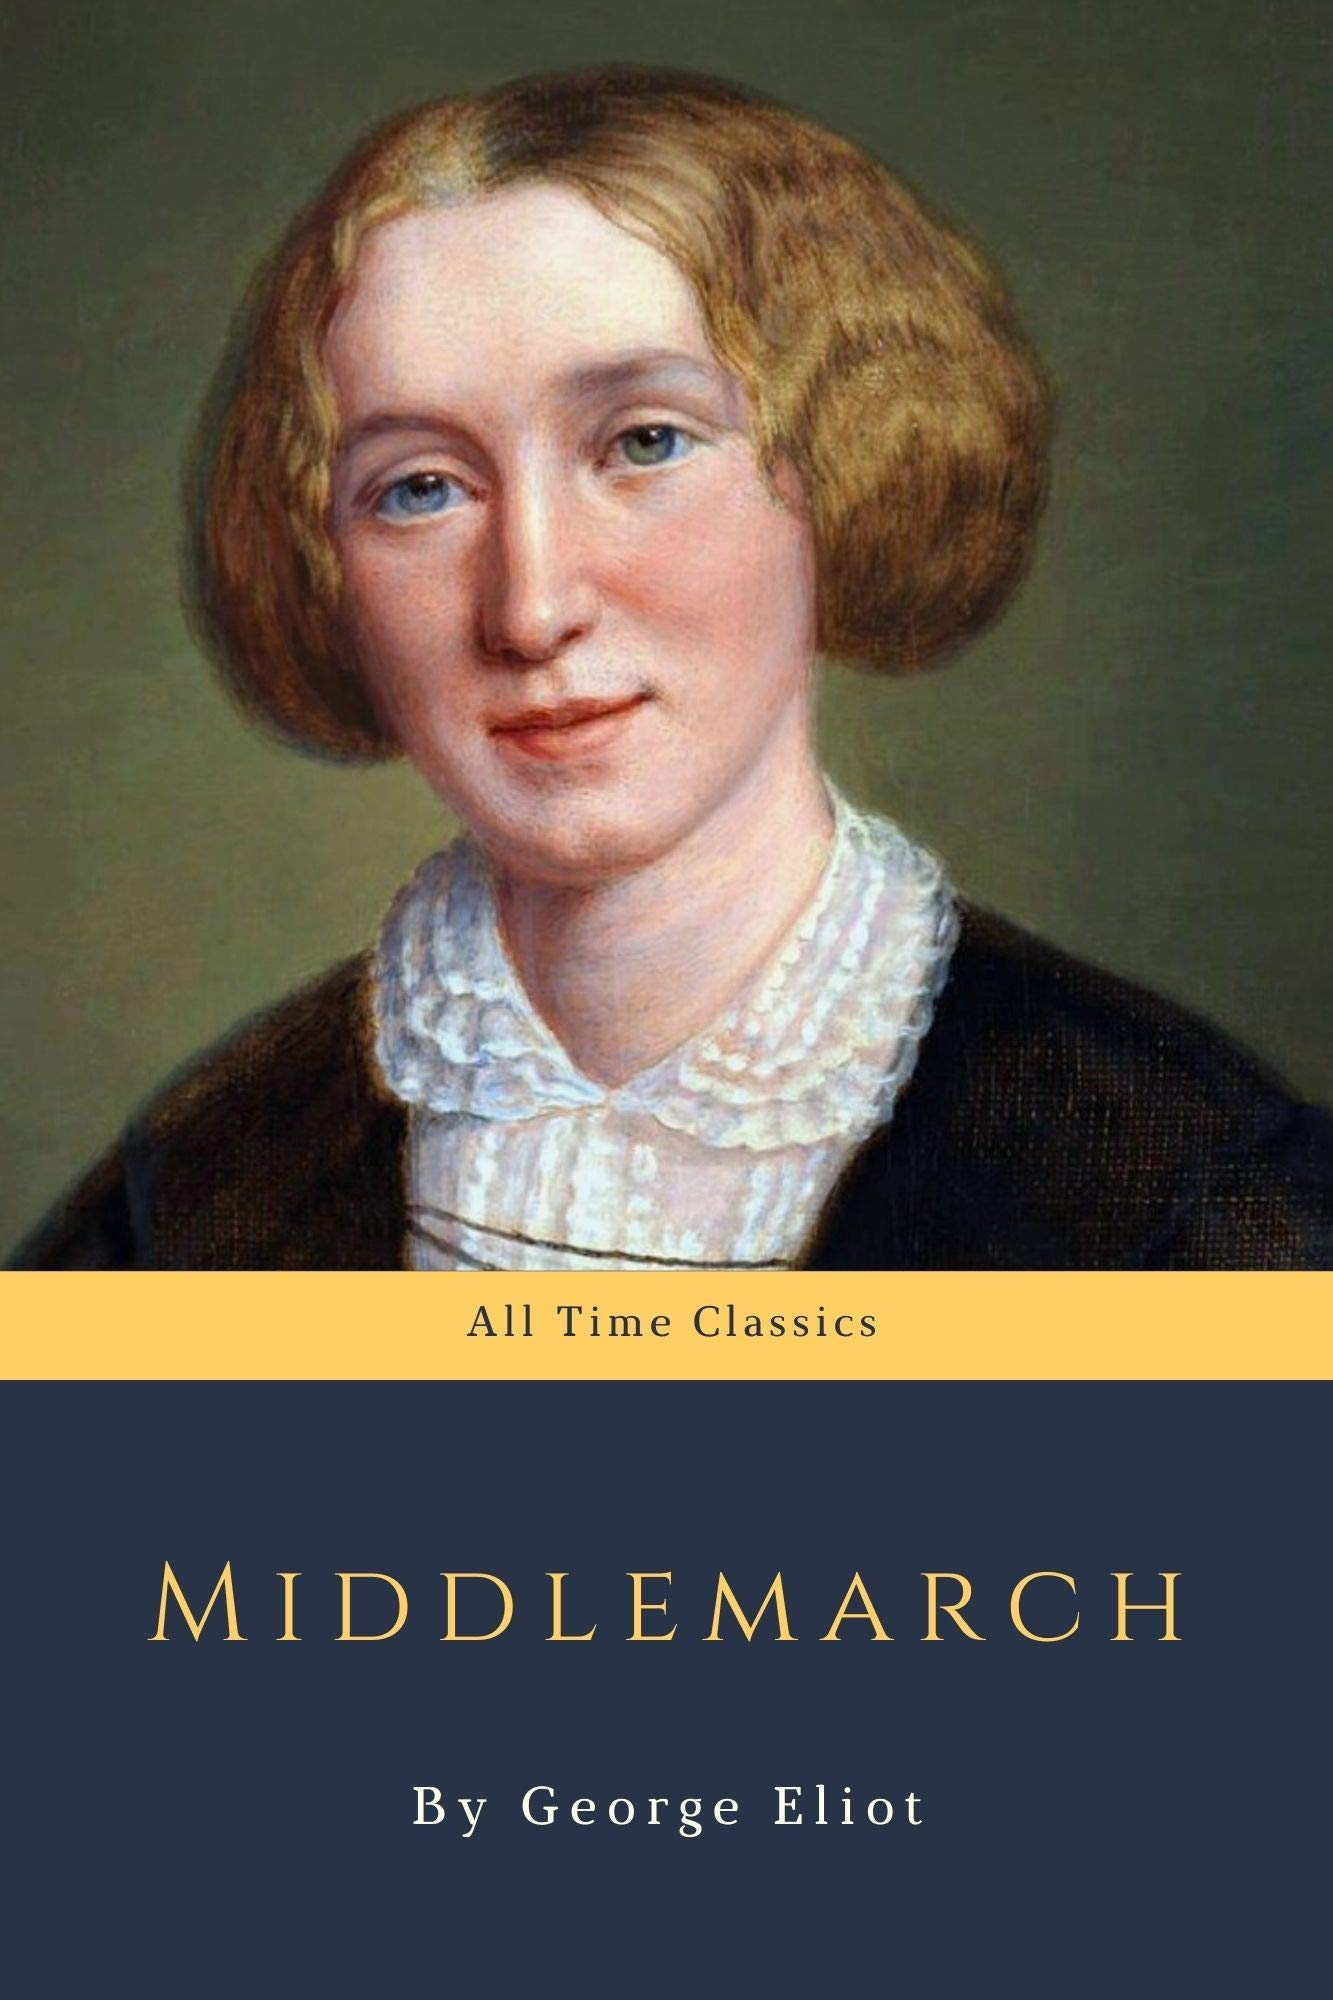 Middlemarch by George Eliot (All Time Classics Book 21)